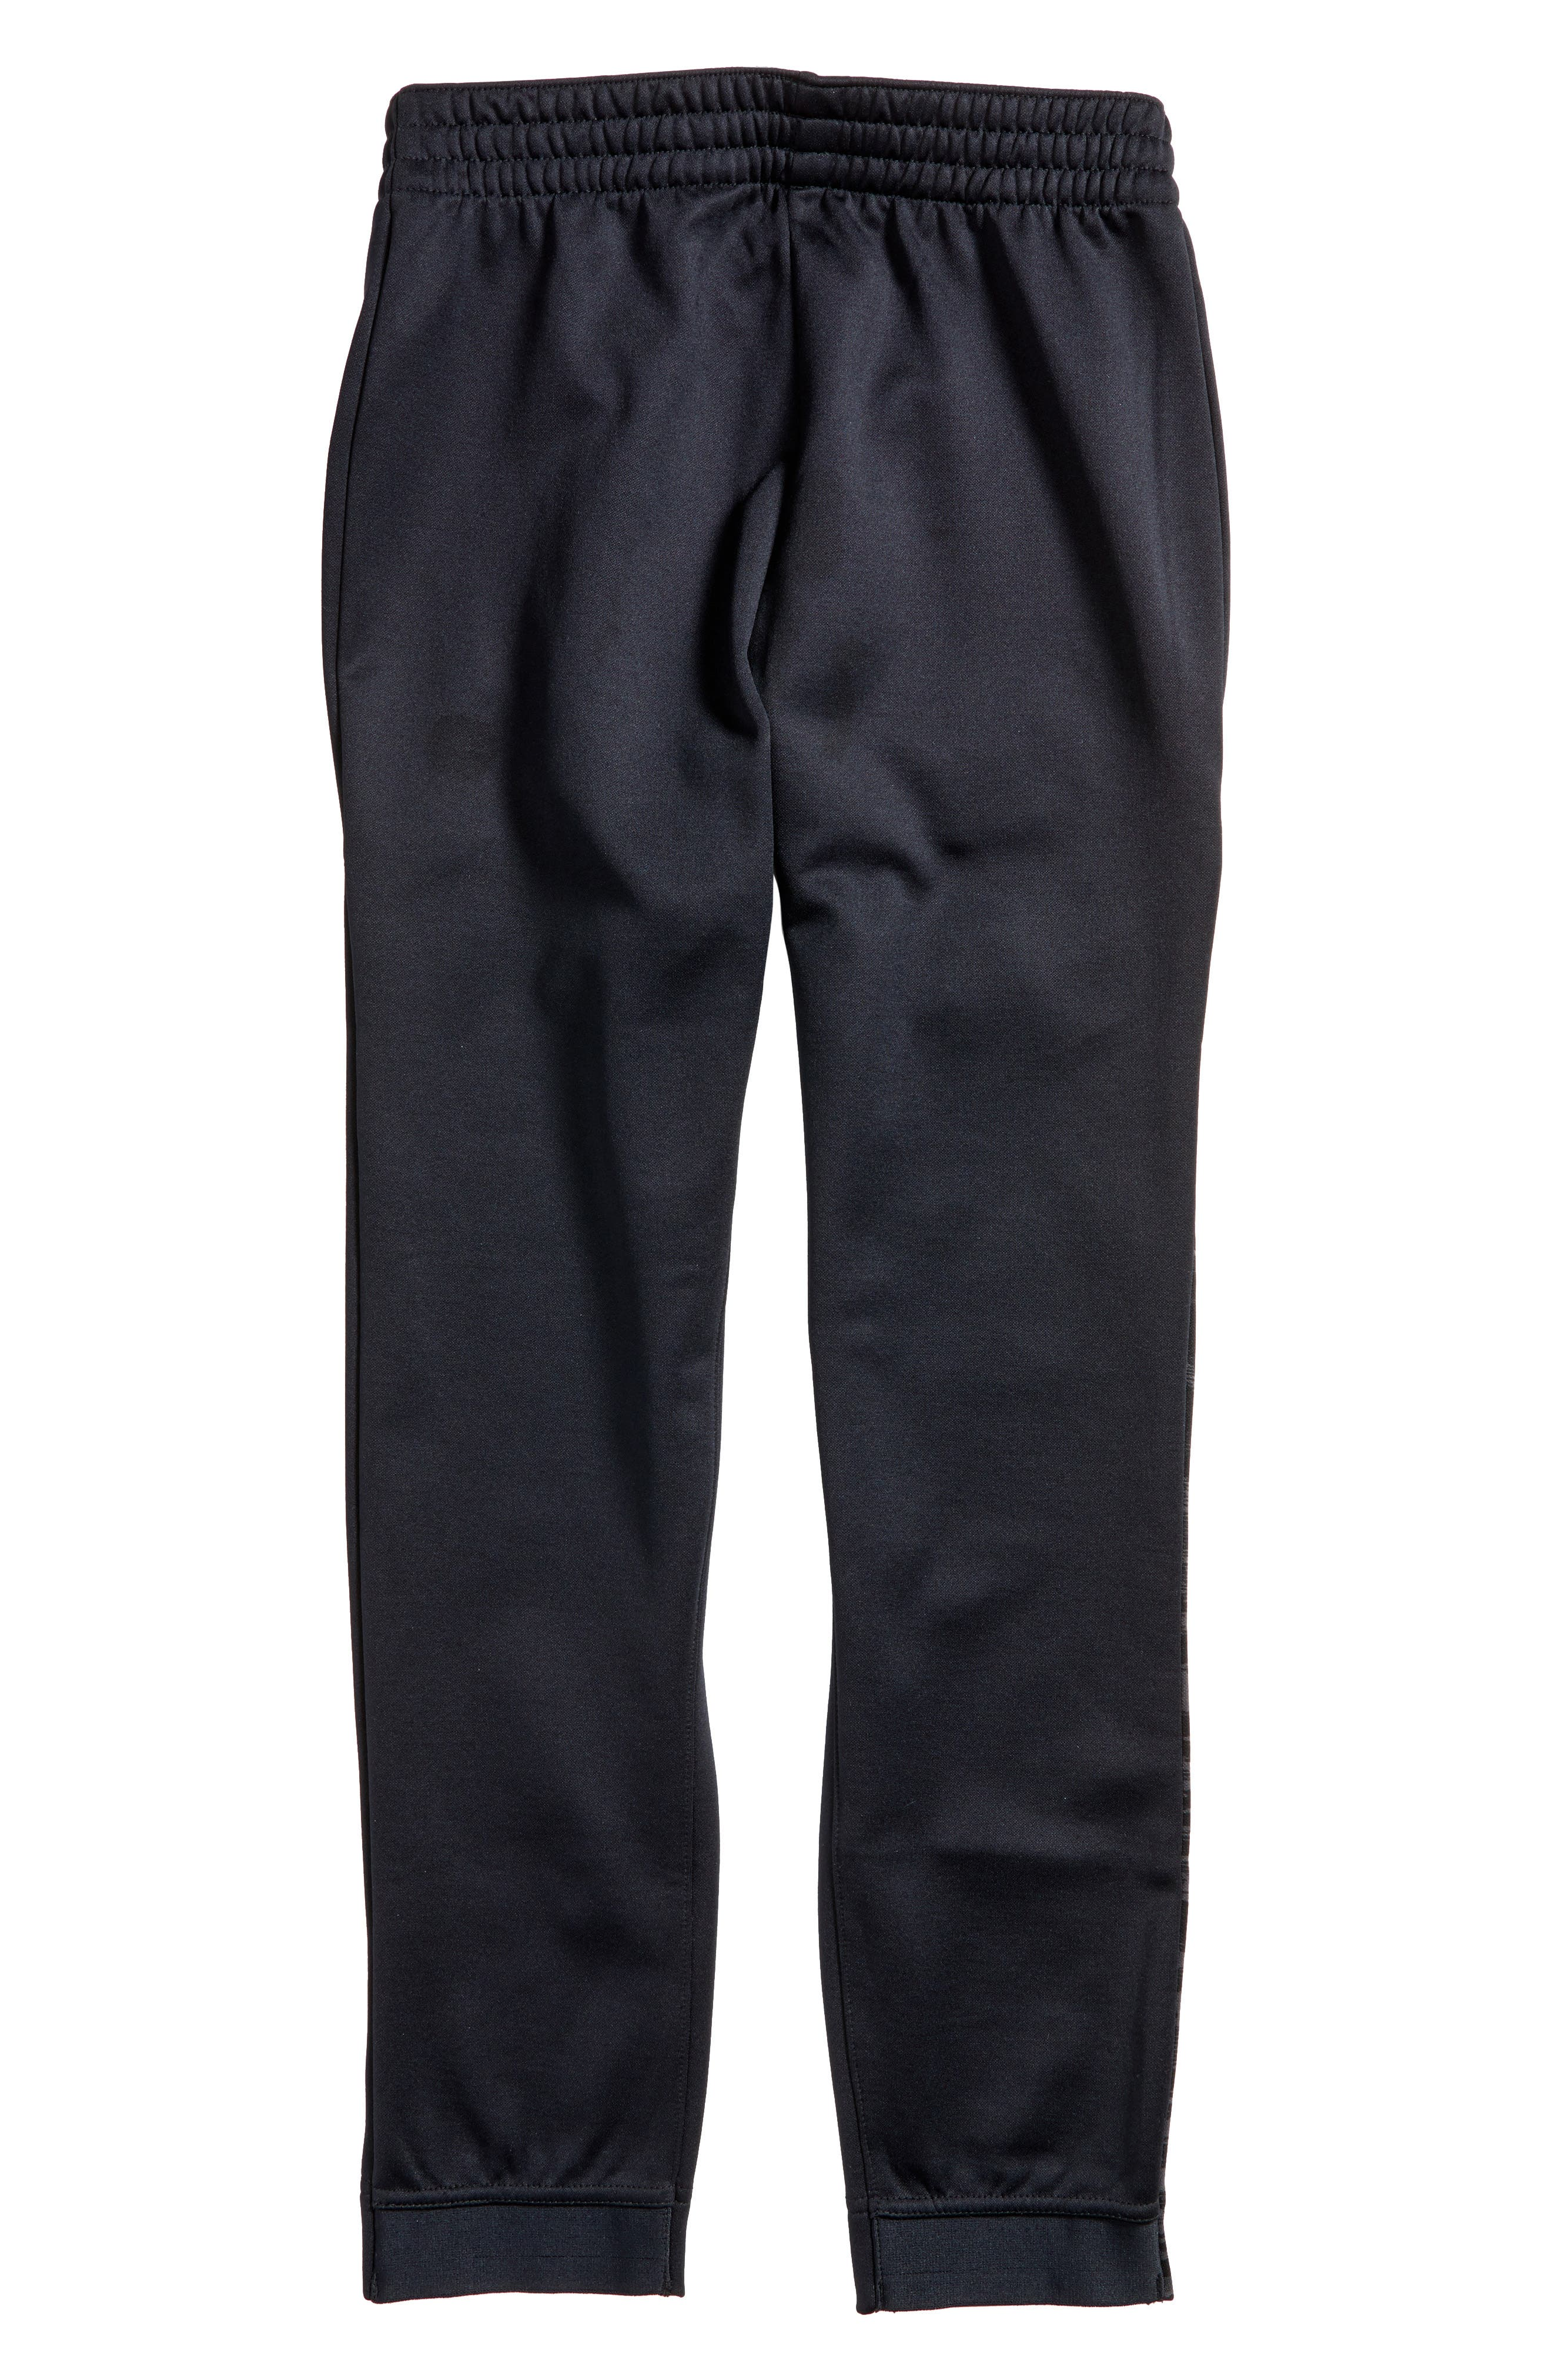 Therma Elite Pants,                         Main,                         color, 010